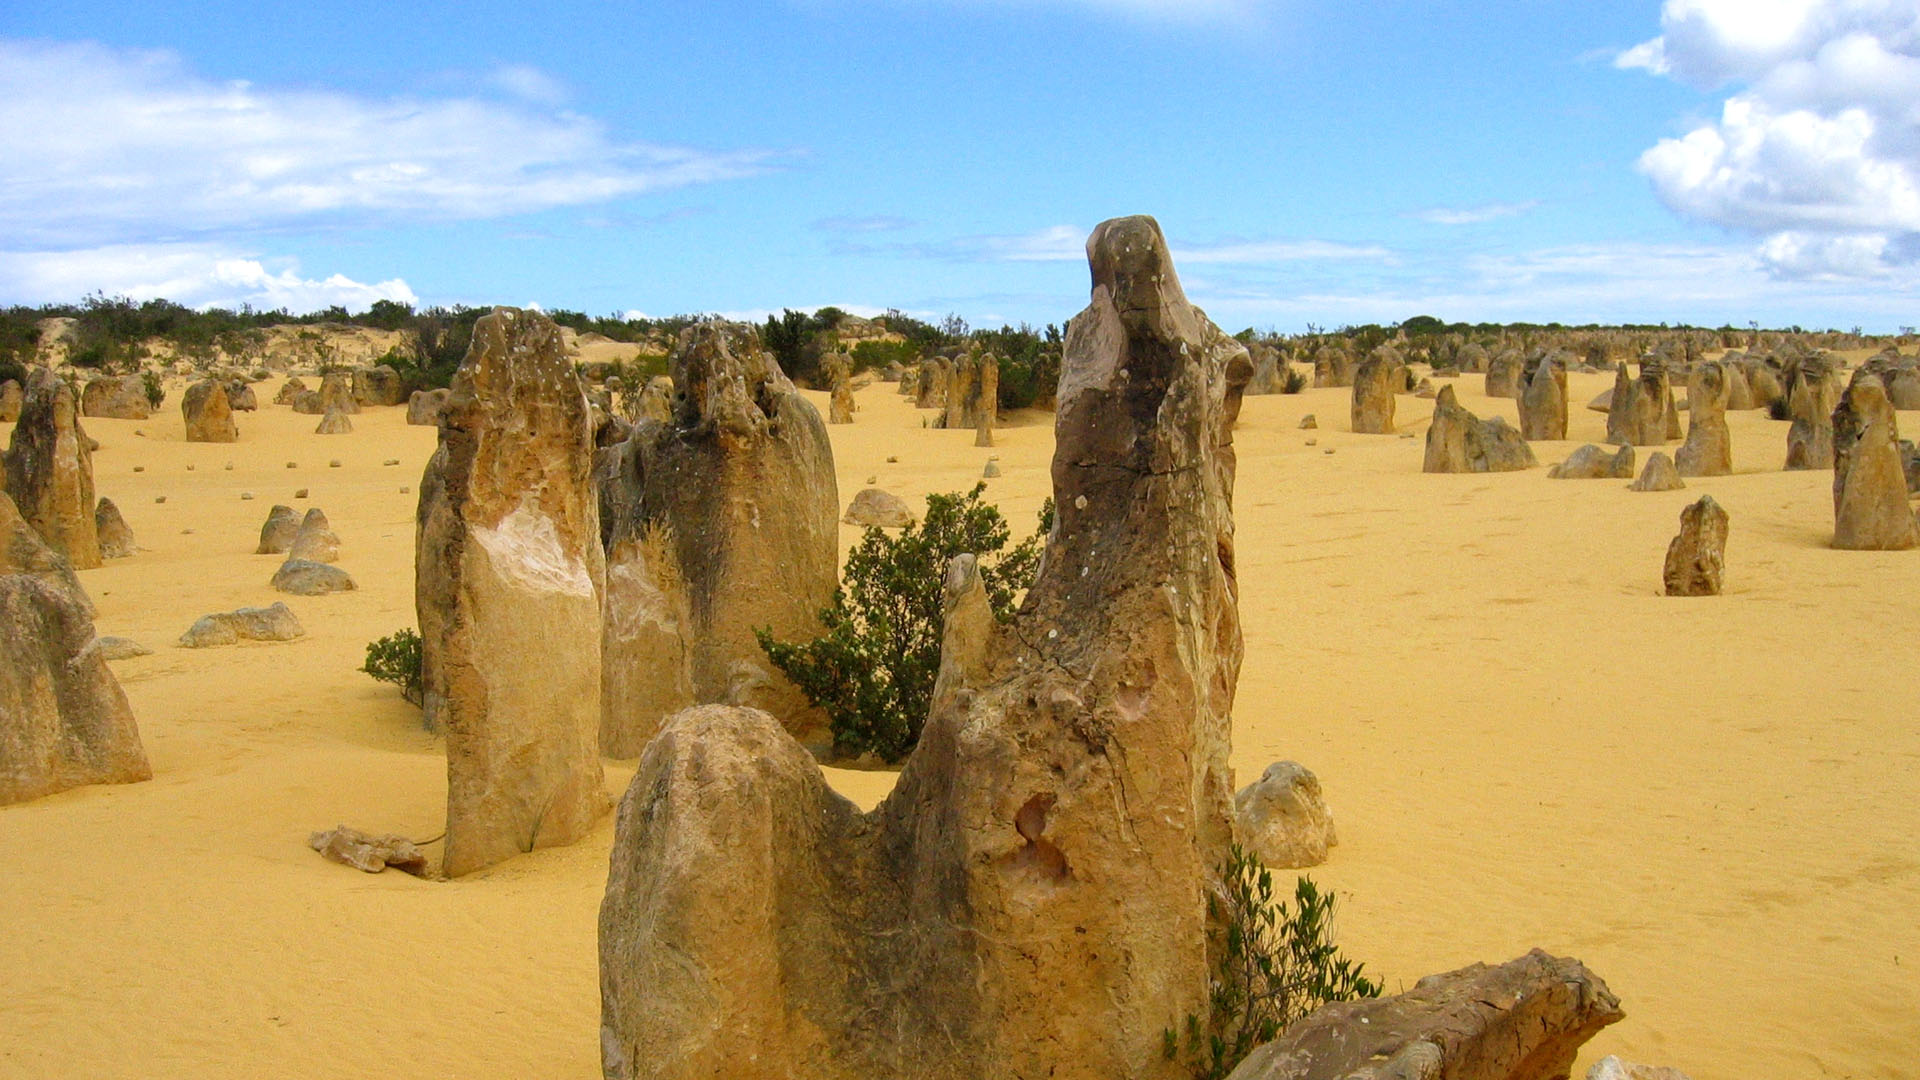 File:01-wallpaper-pinnacles-australien.JPG - Wikimedia Commons